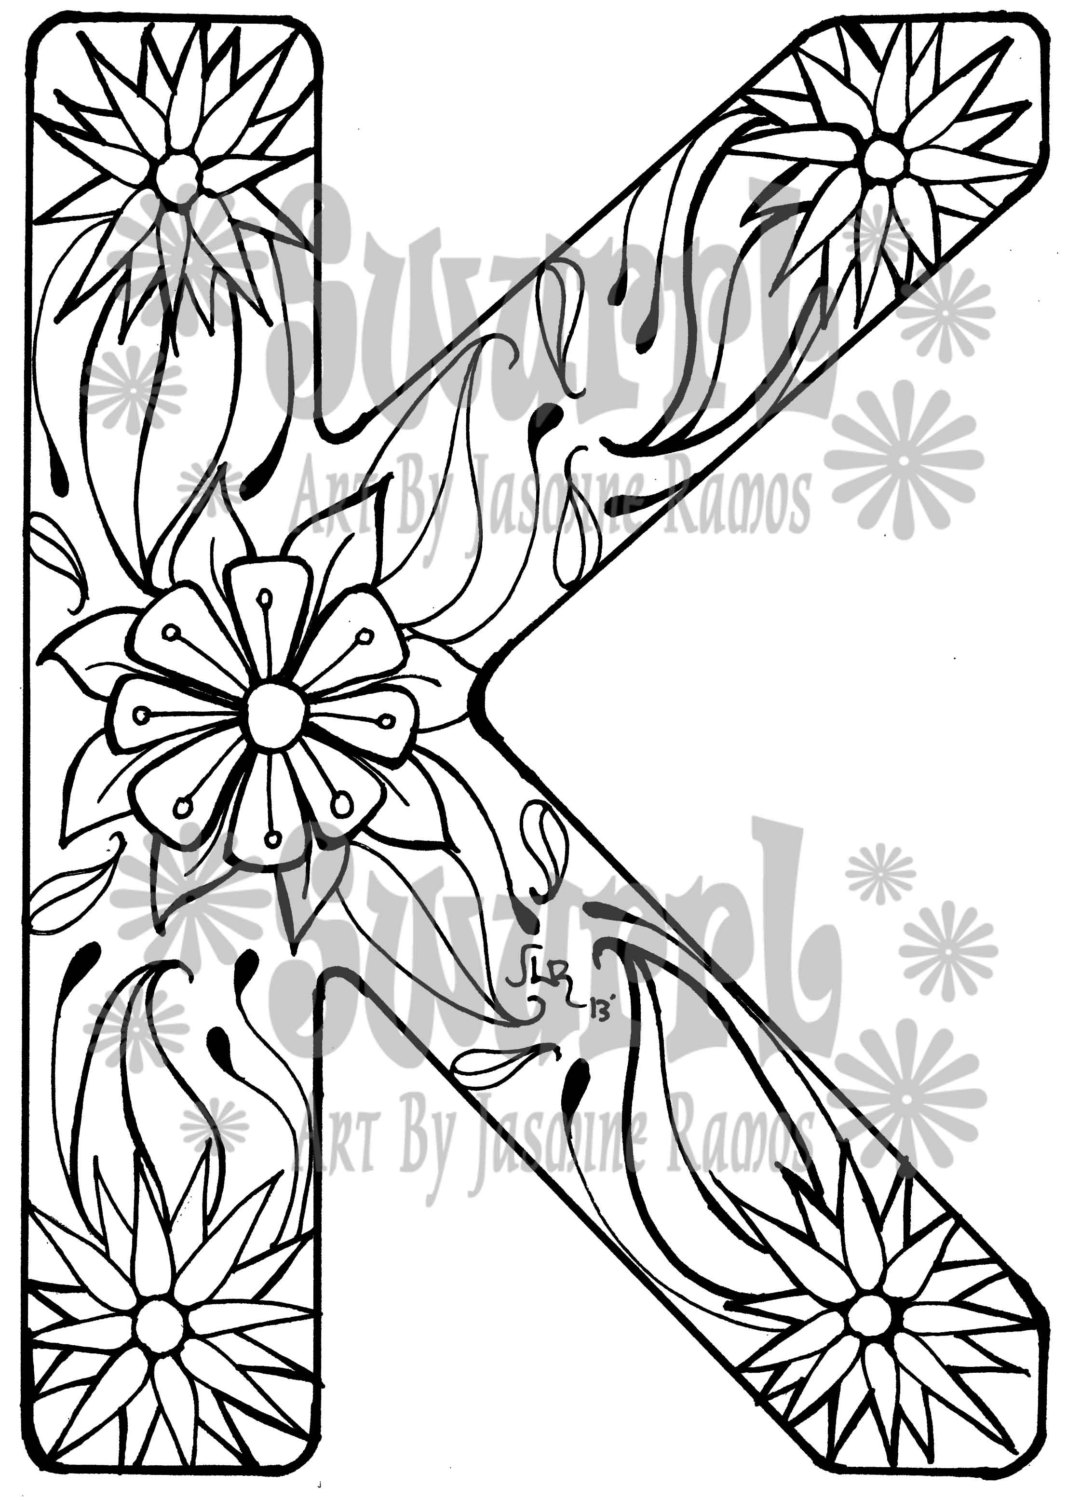 letter k coloring pages for adults lizzy doyle k letter 1 coloring pages adult coloring adults k for letter coloring pages